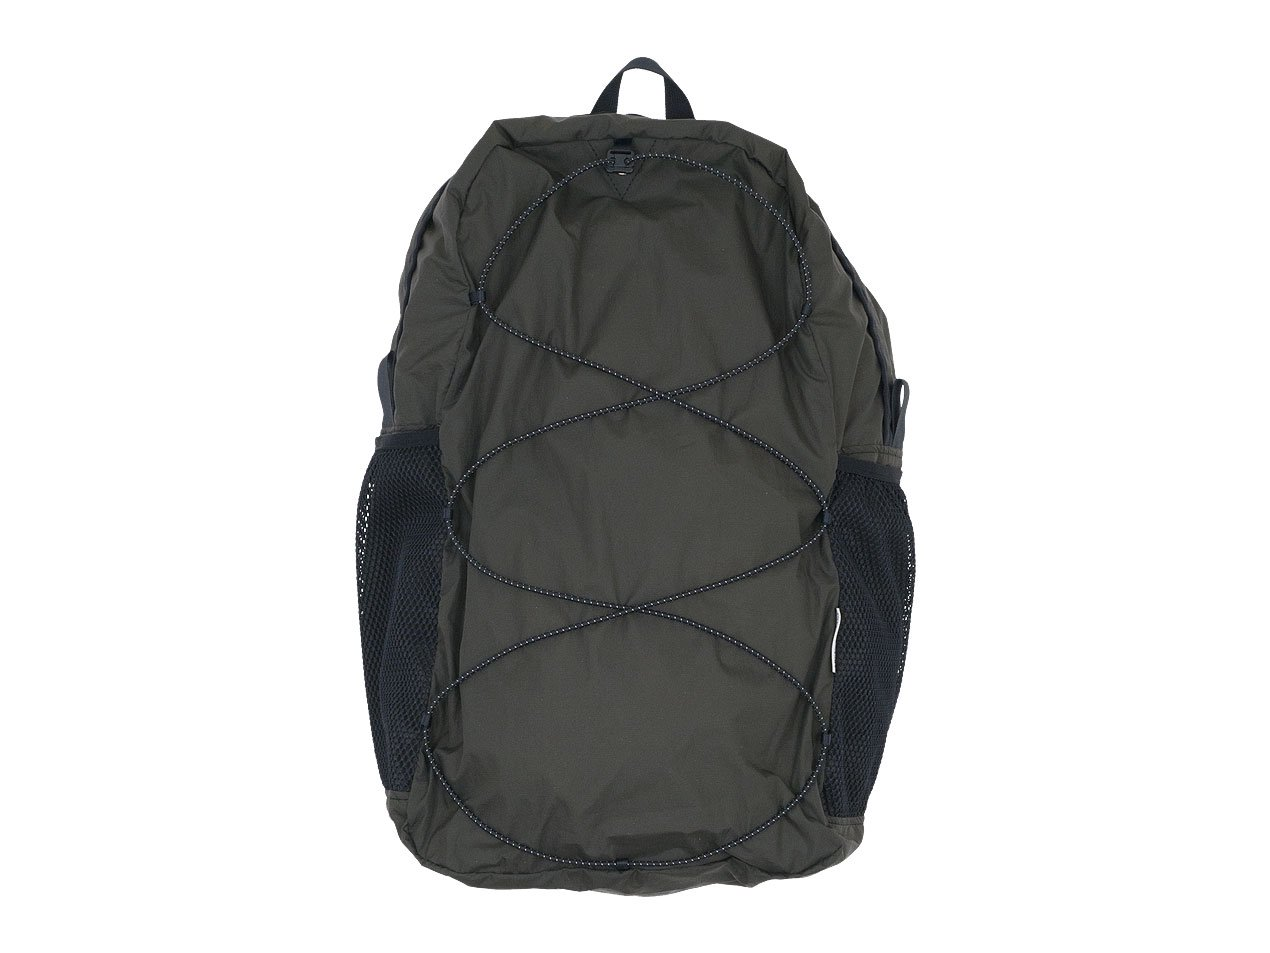 ENDS and MEANS Packable Back Pack AFRICAN BLACK